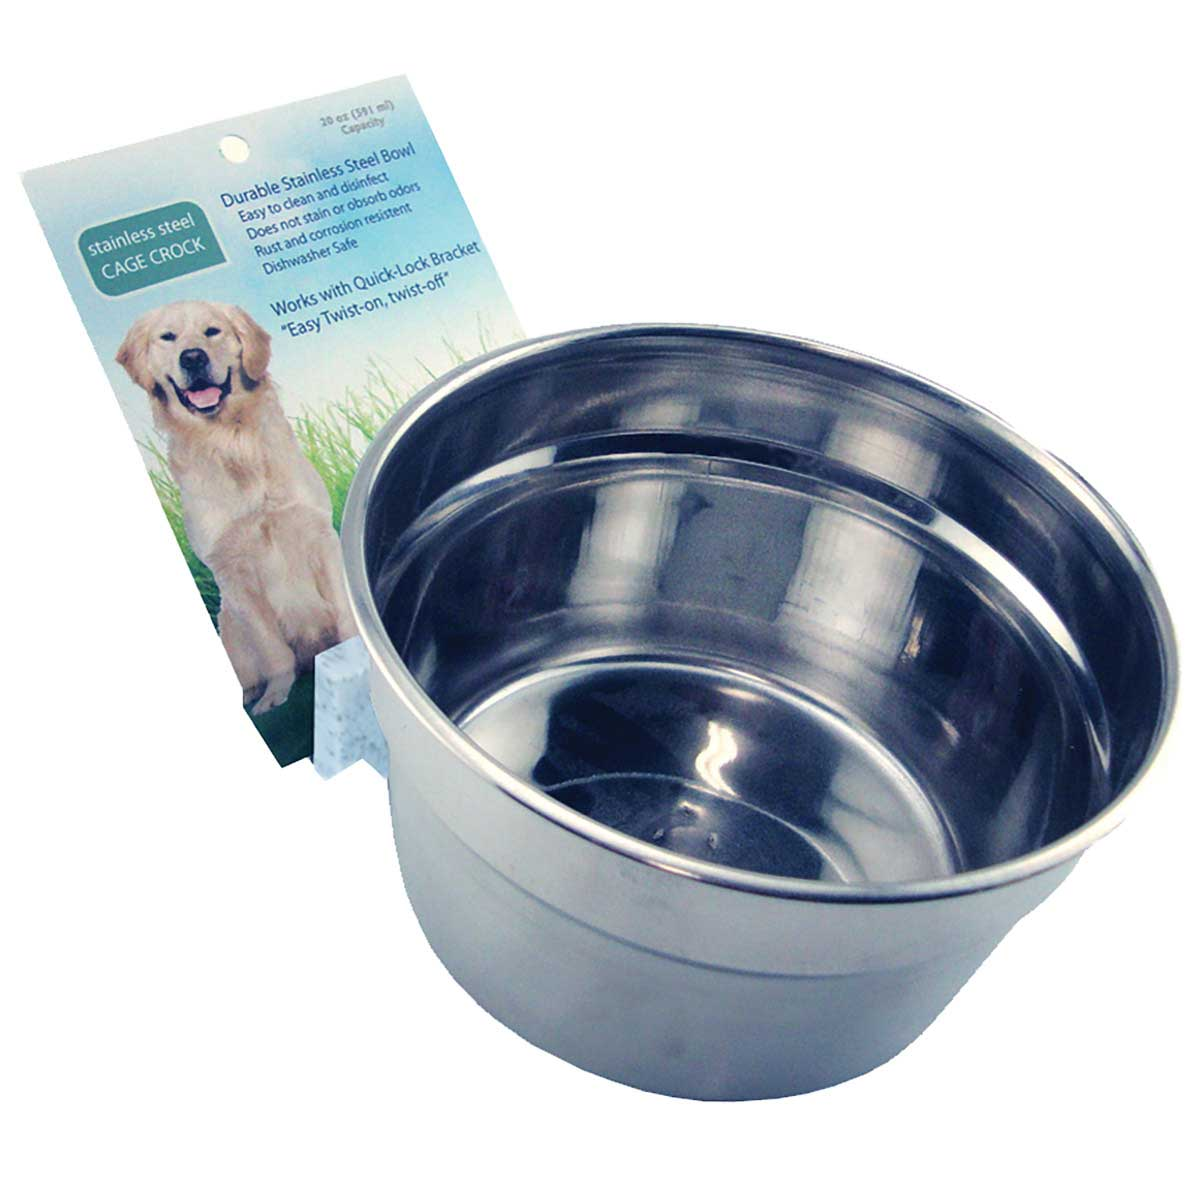 20 oz Lixit High Quality Stainless Steel Crock Bowl for Dog Kennels